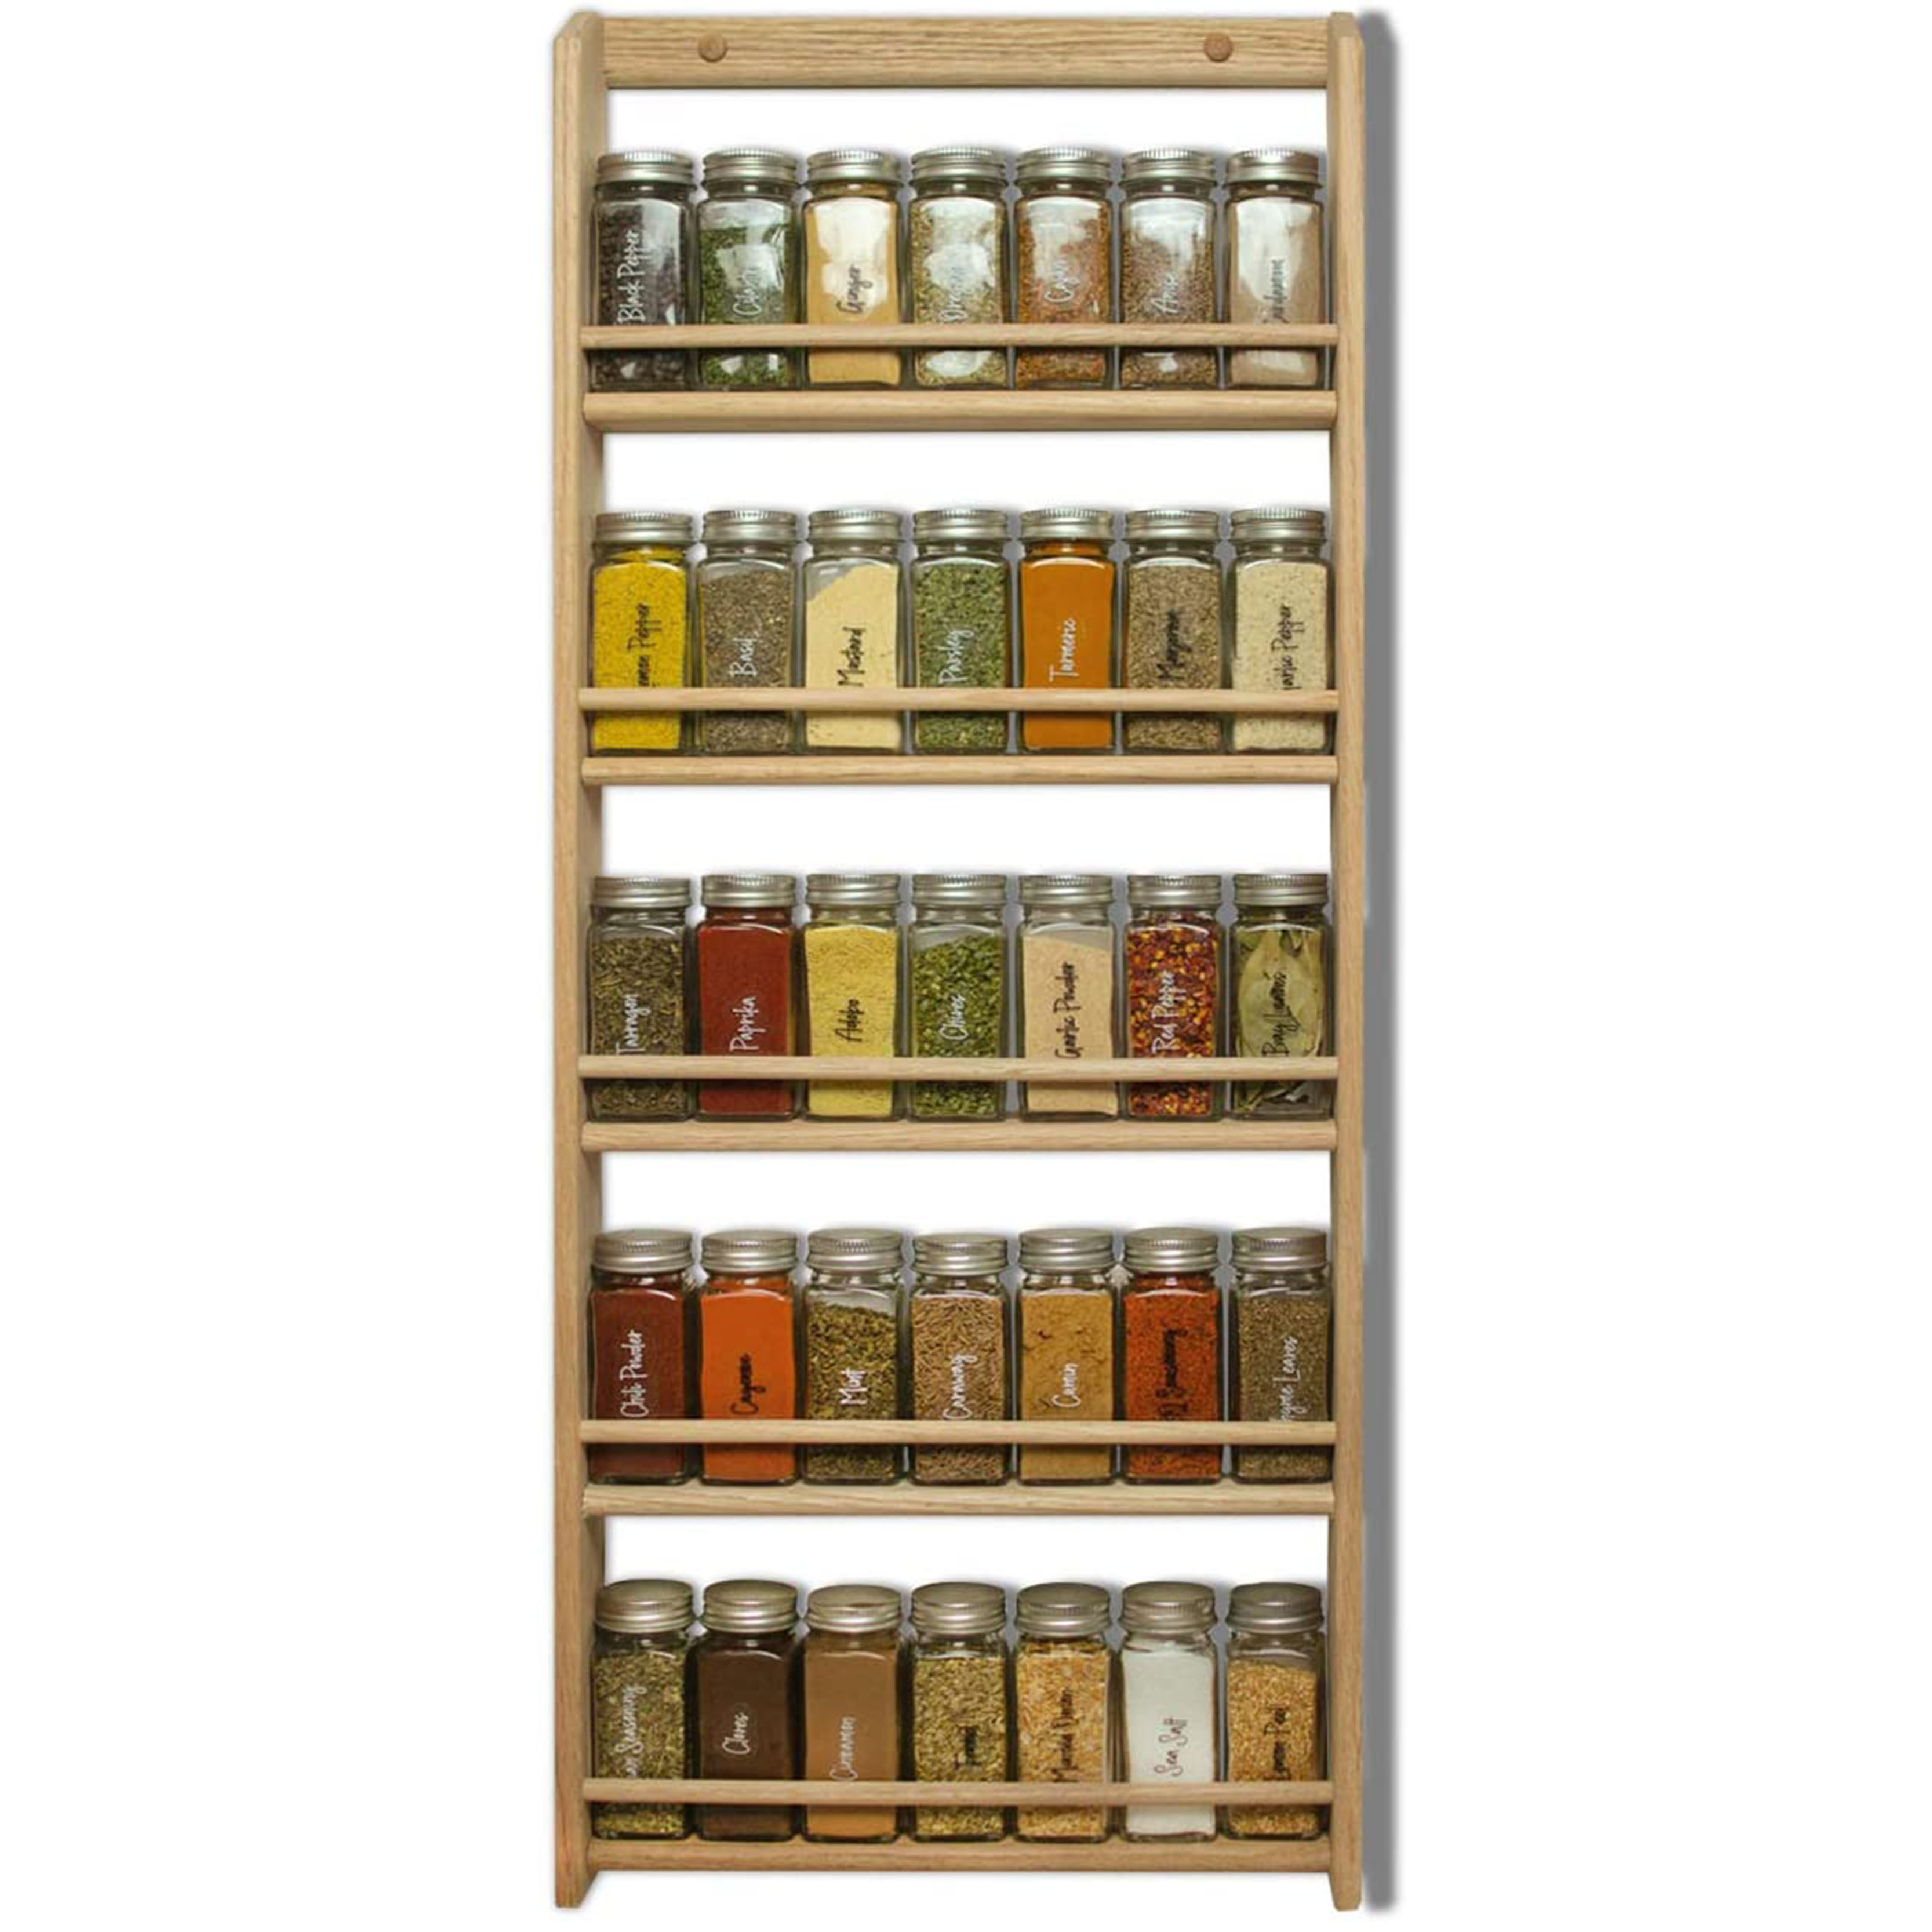 wood spice rack organizer 5 tier wall mounted seasoning storage for pantry and kitchen buy spice rack 5 tier wall mounted seasoning storage for